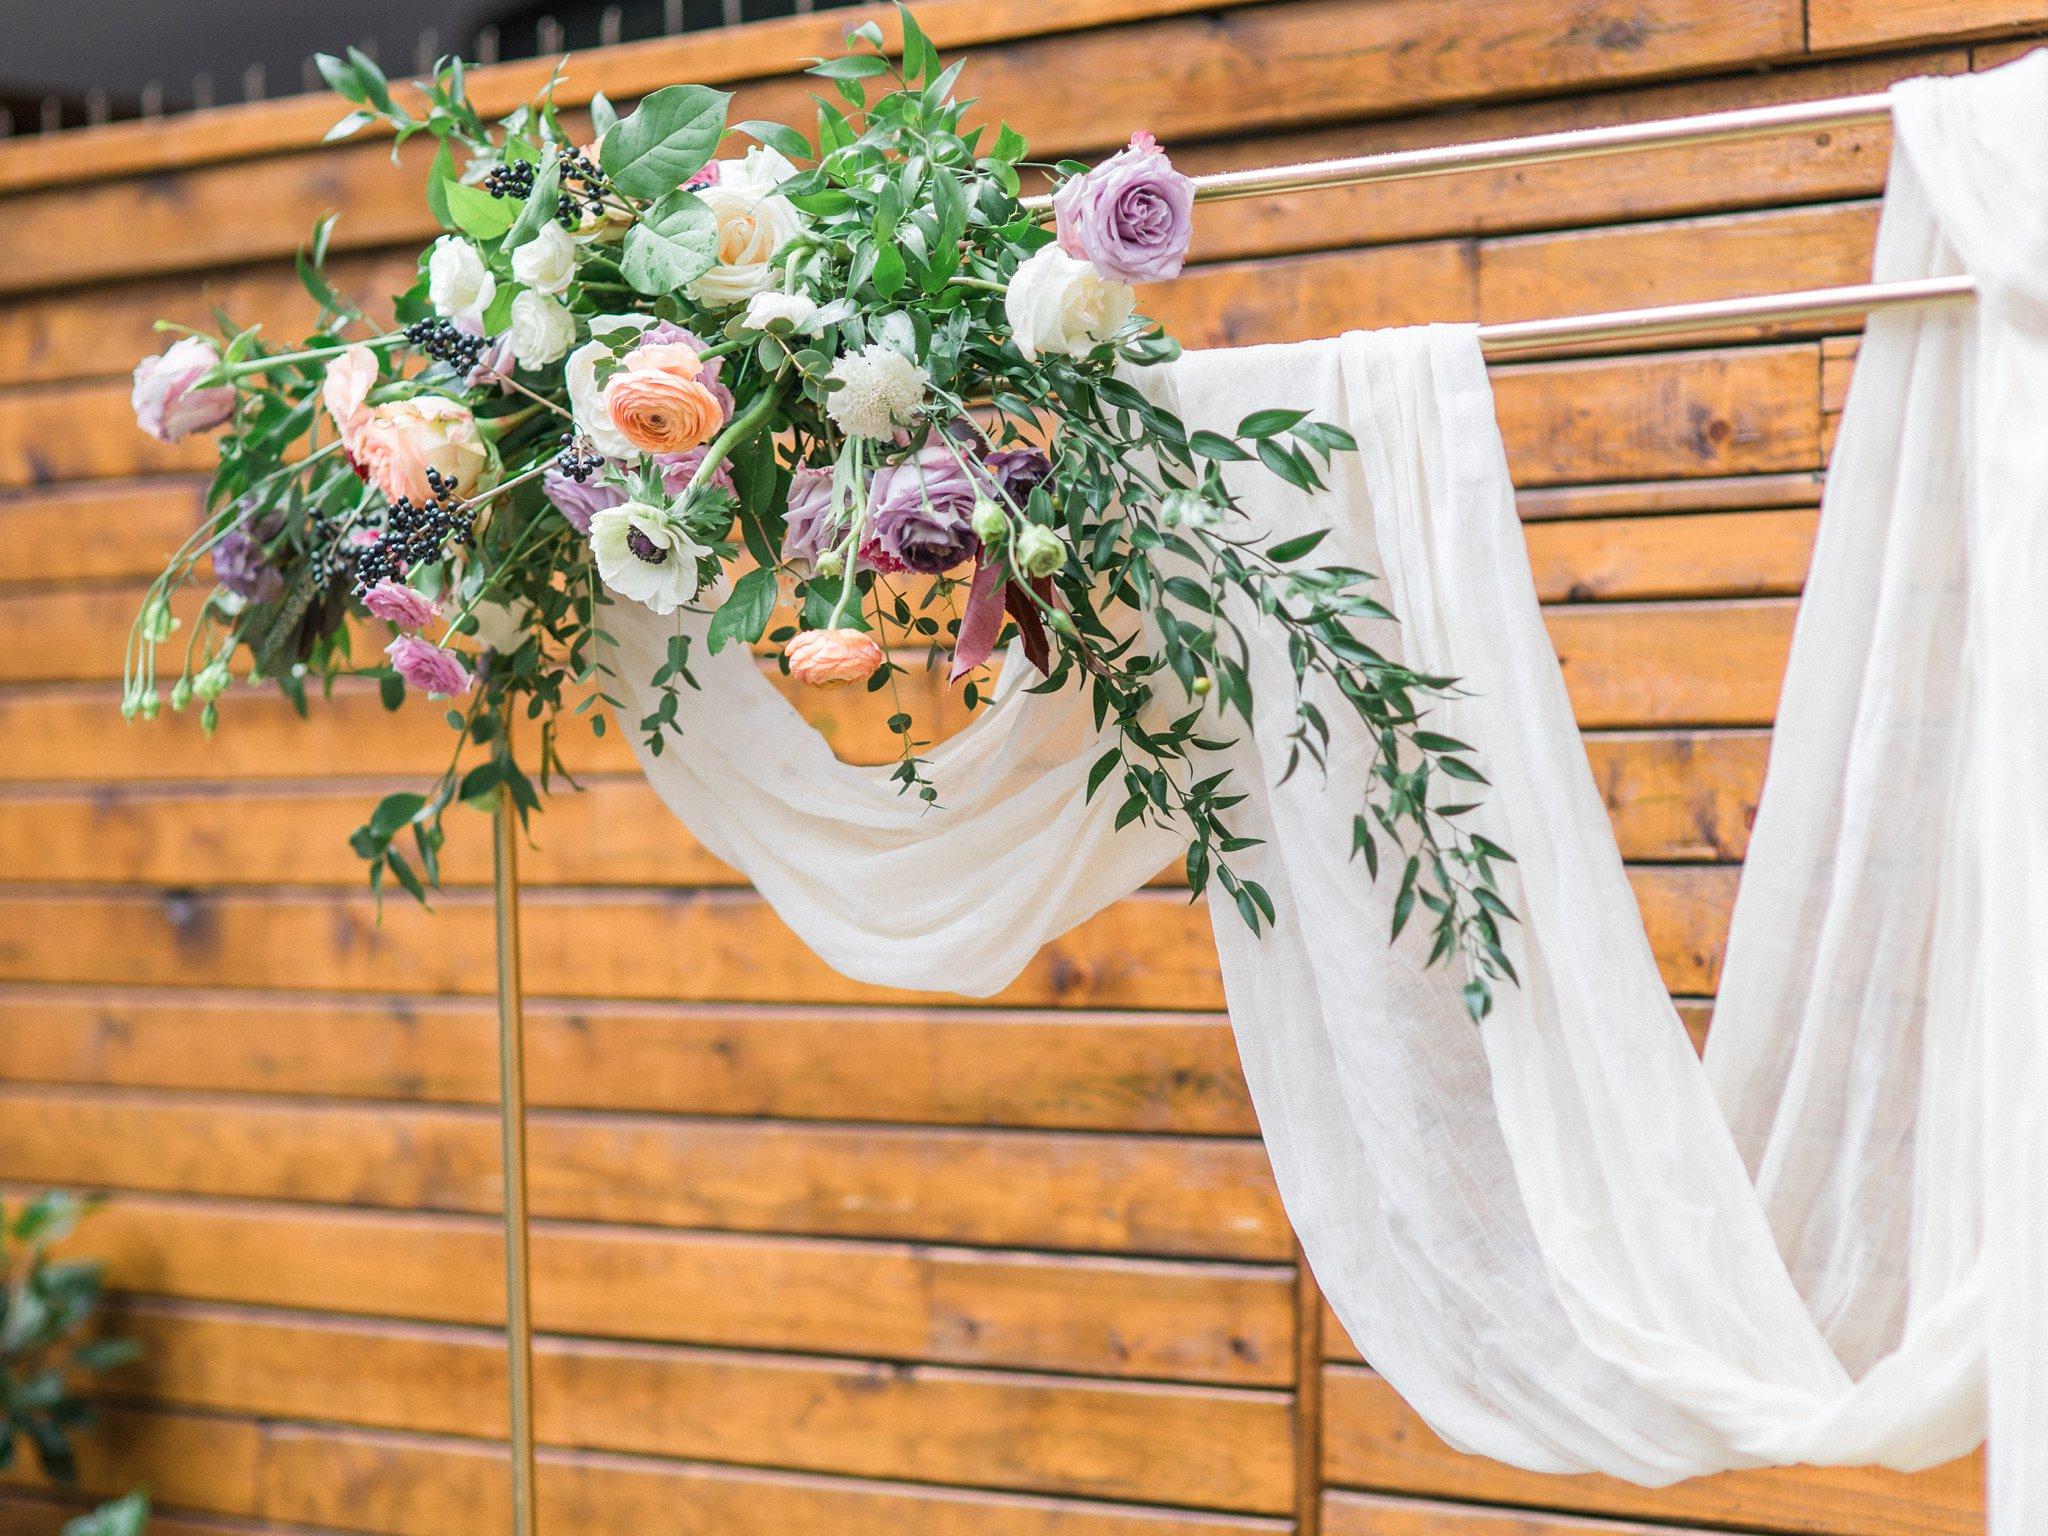 Metallic ceremony arch with florals Ottawa restaurant wedding at Sidedoor Restaurant